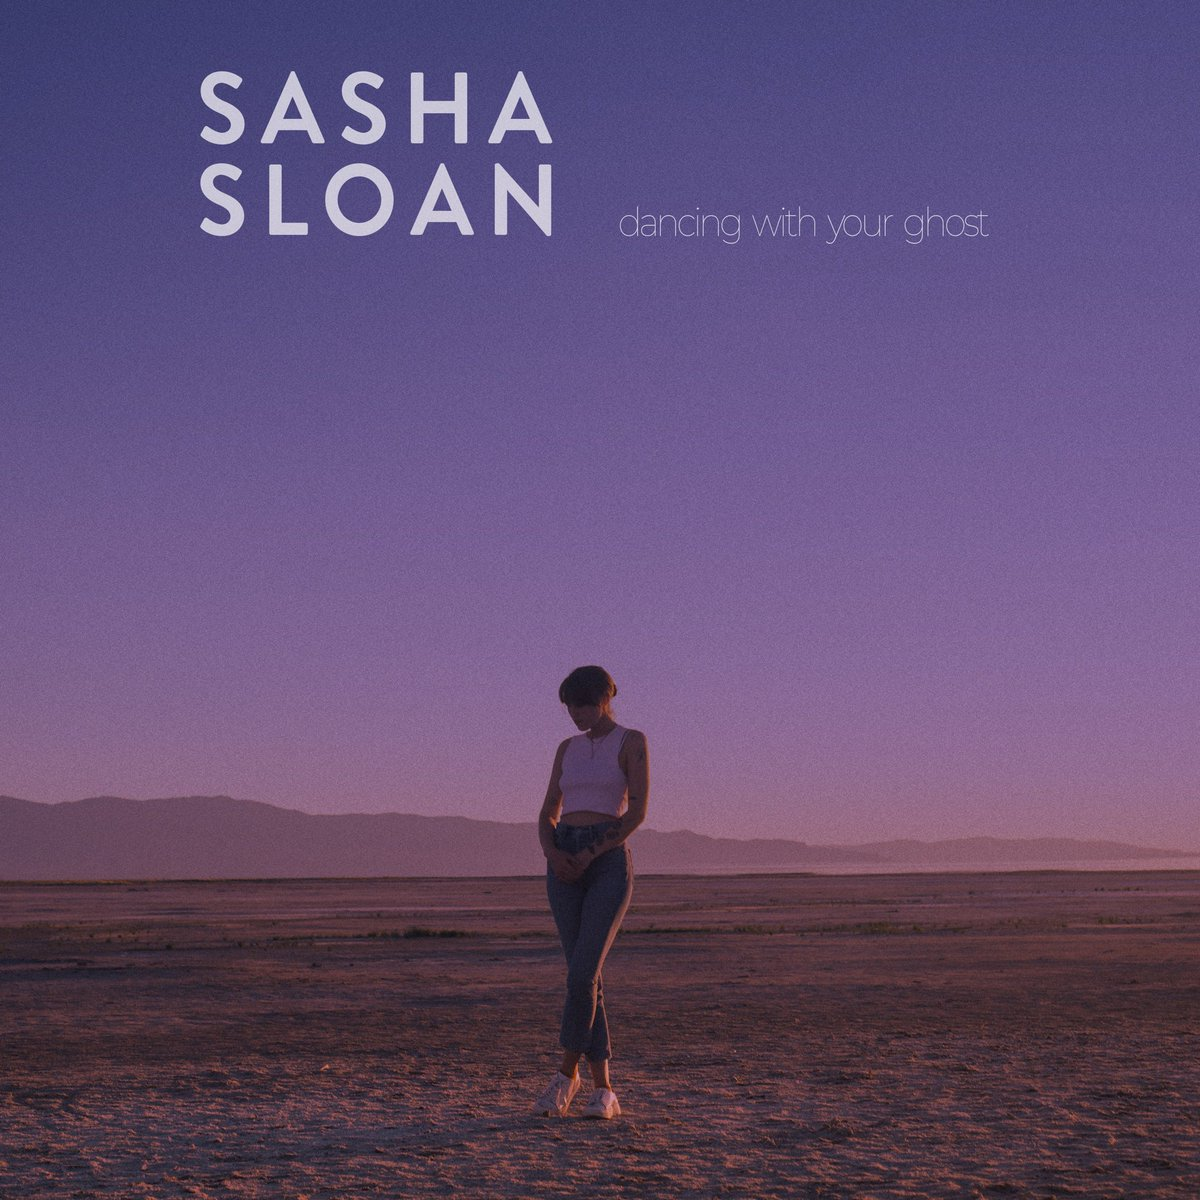 Sasha Sloan On Twitter This Song Is A Very Very Special